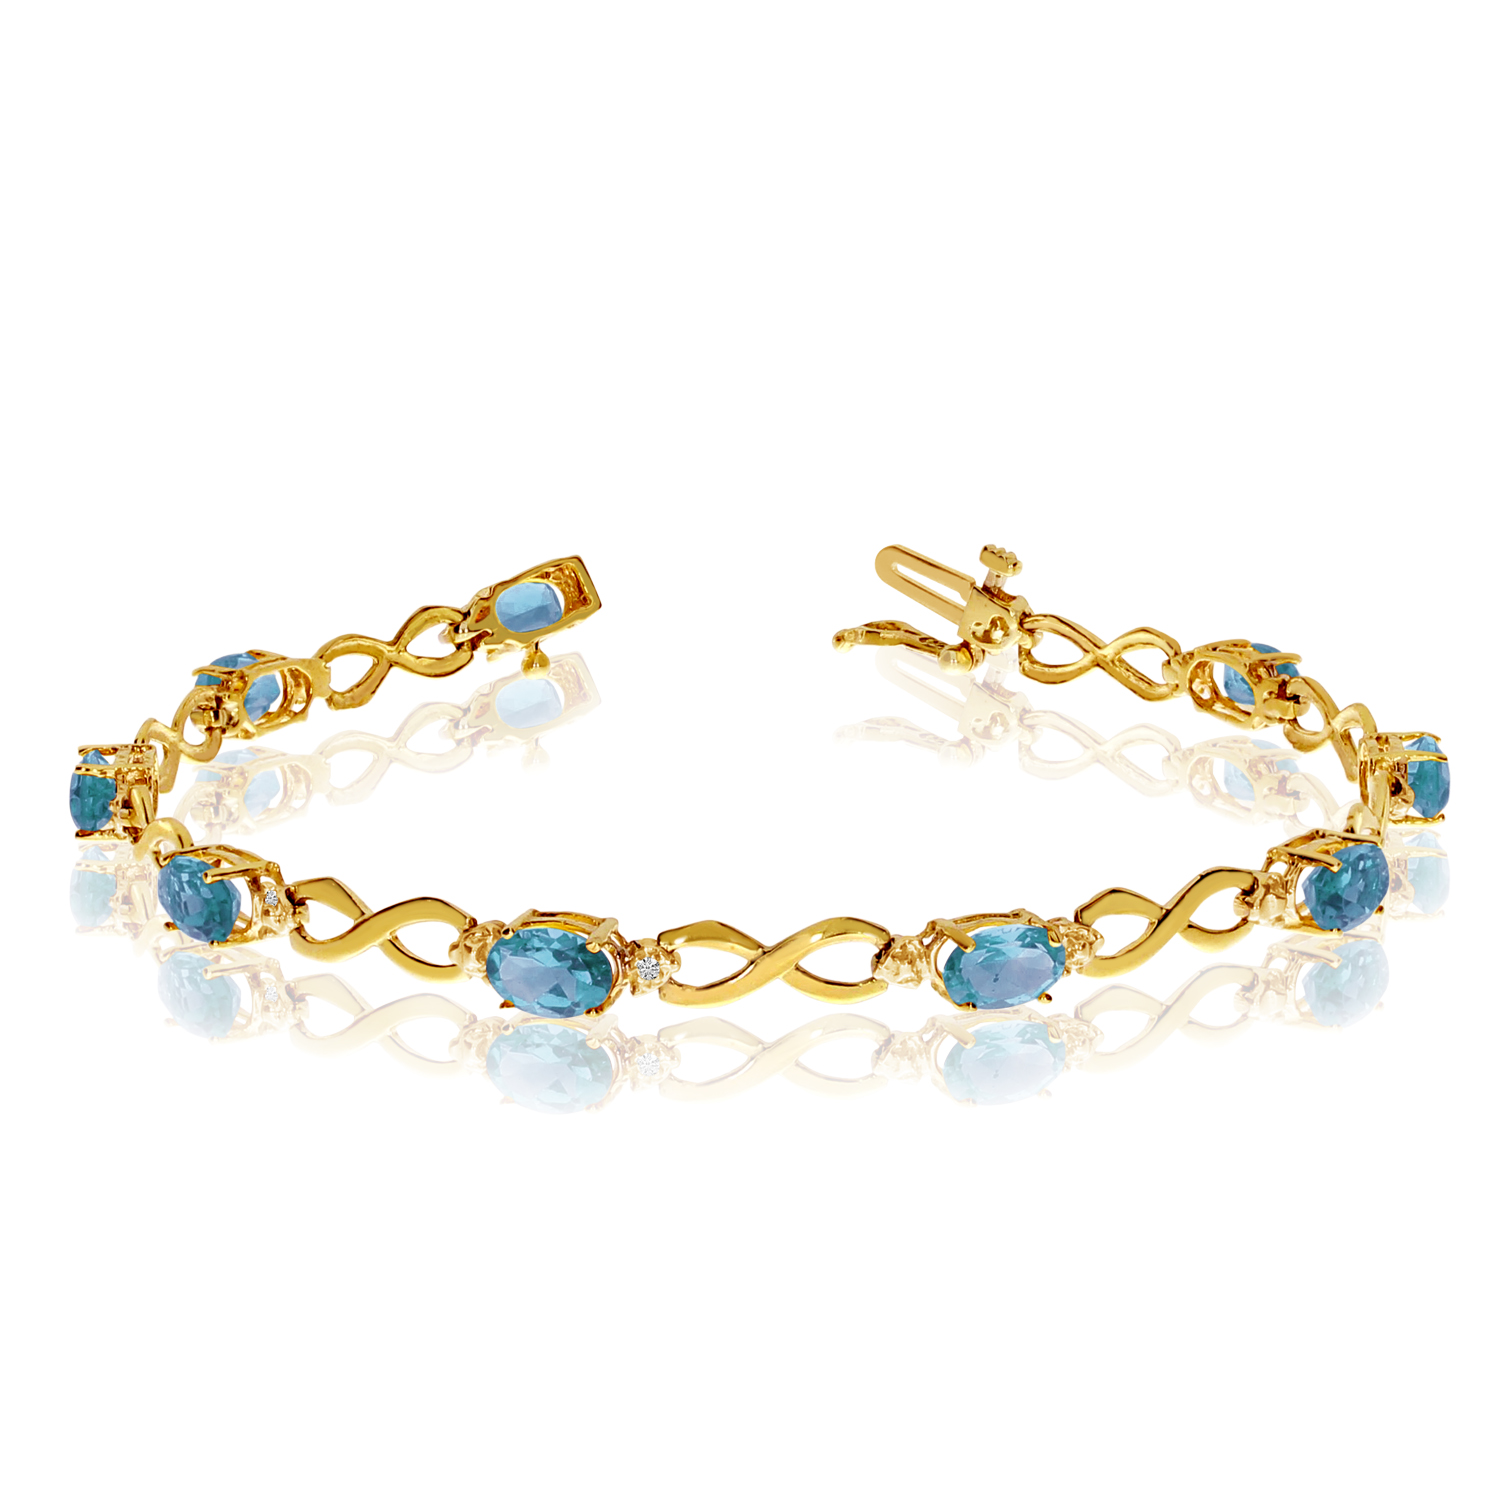 10K Yellow Gold Oval Blue Topaz and Diamond Bracelet by LCD